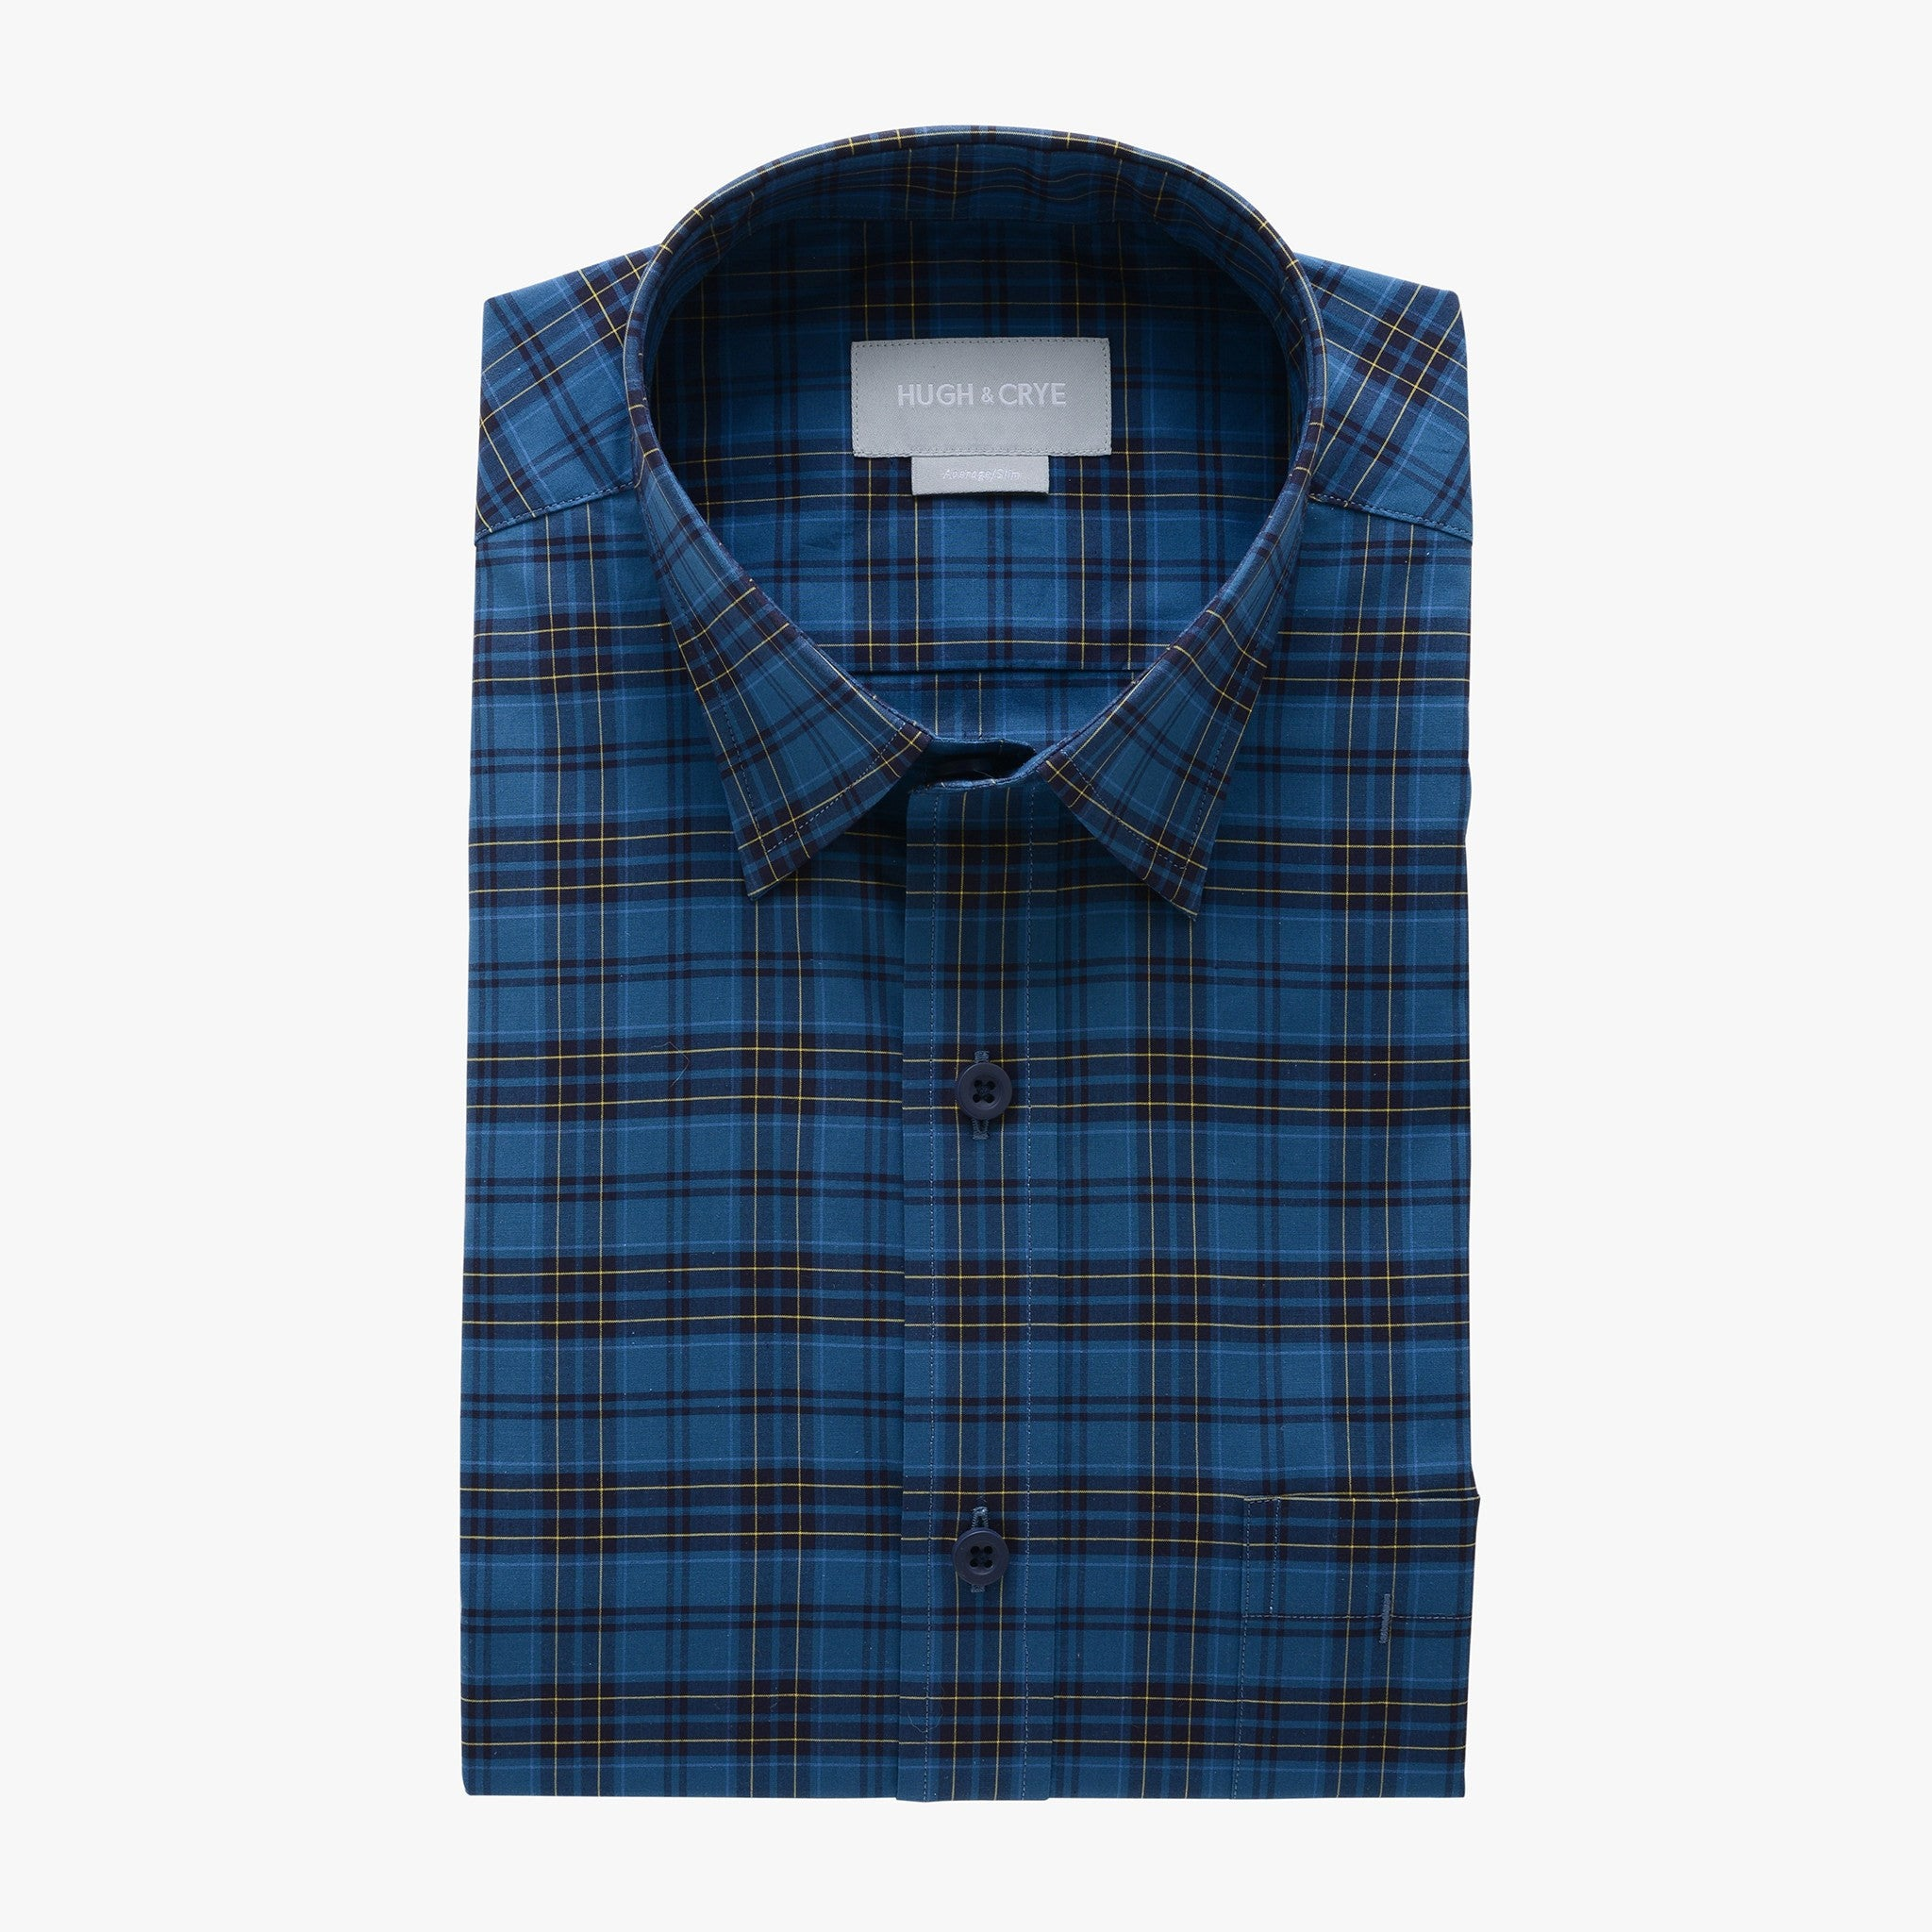 casual point collar shirt in blue, yellow plaid poplin - teton - flat